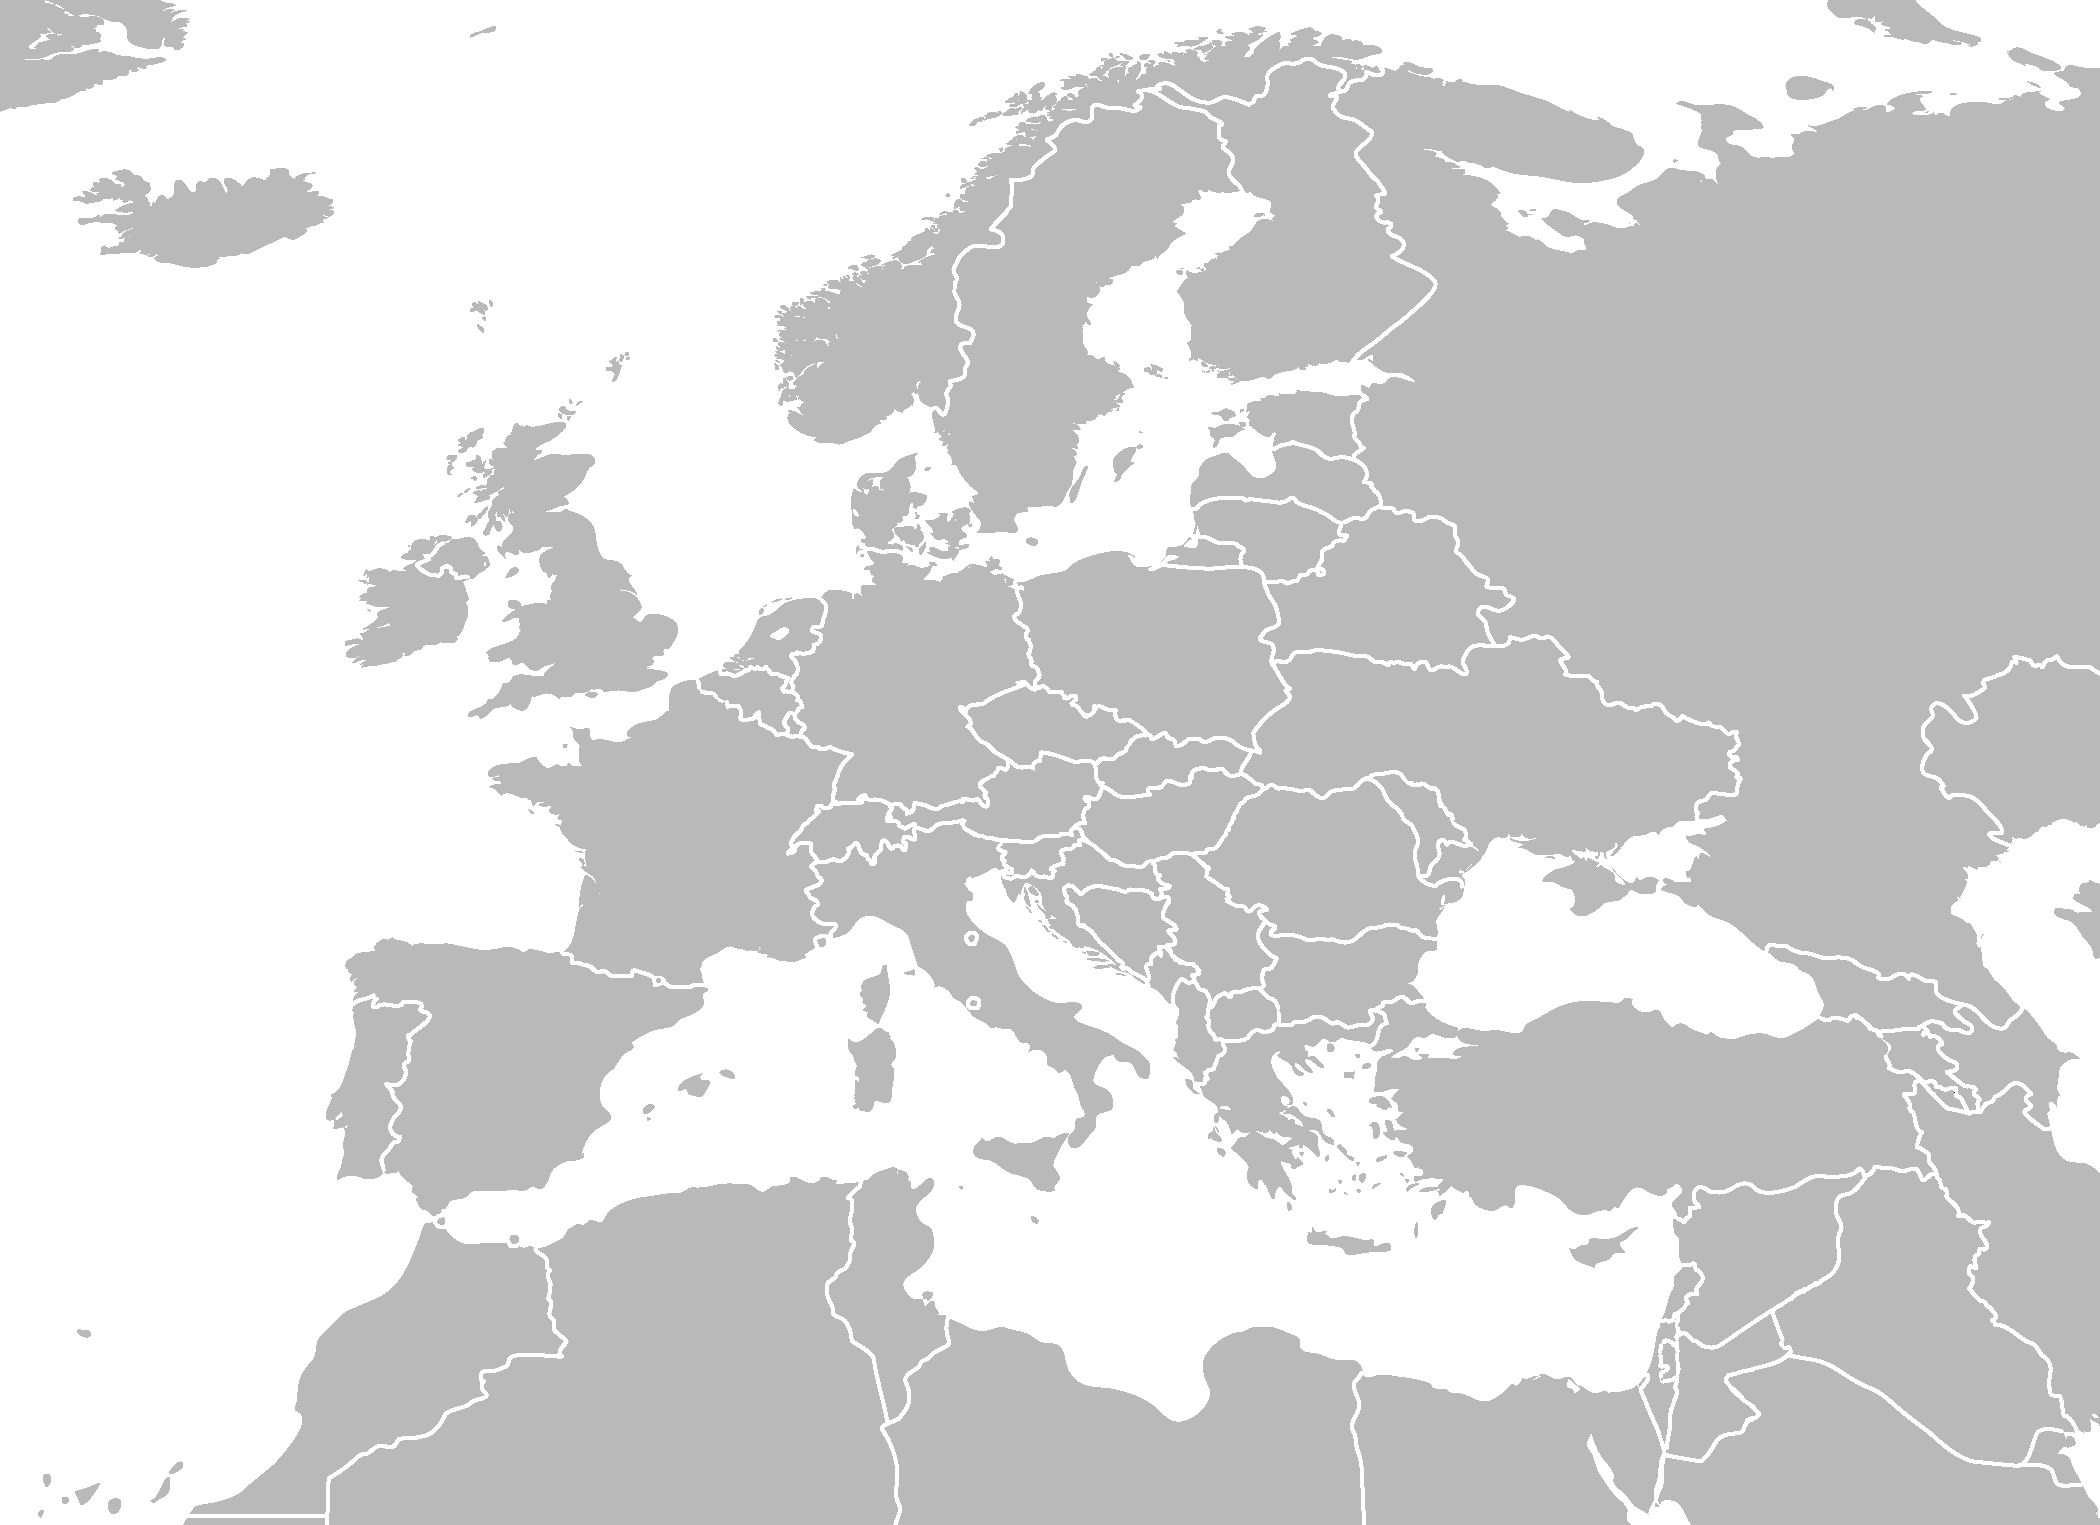 file blankmap europe v4 png